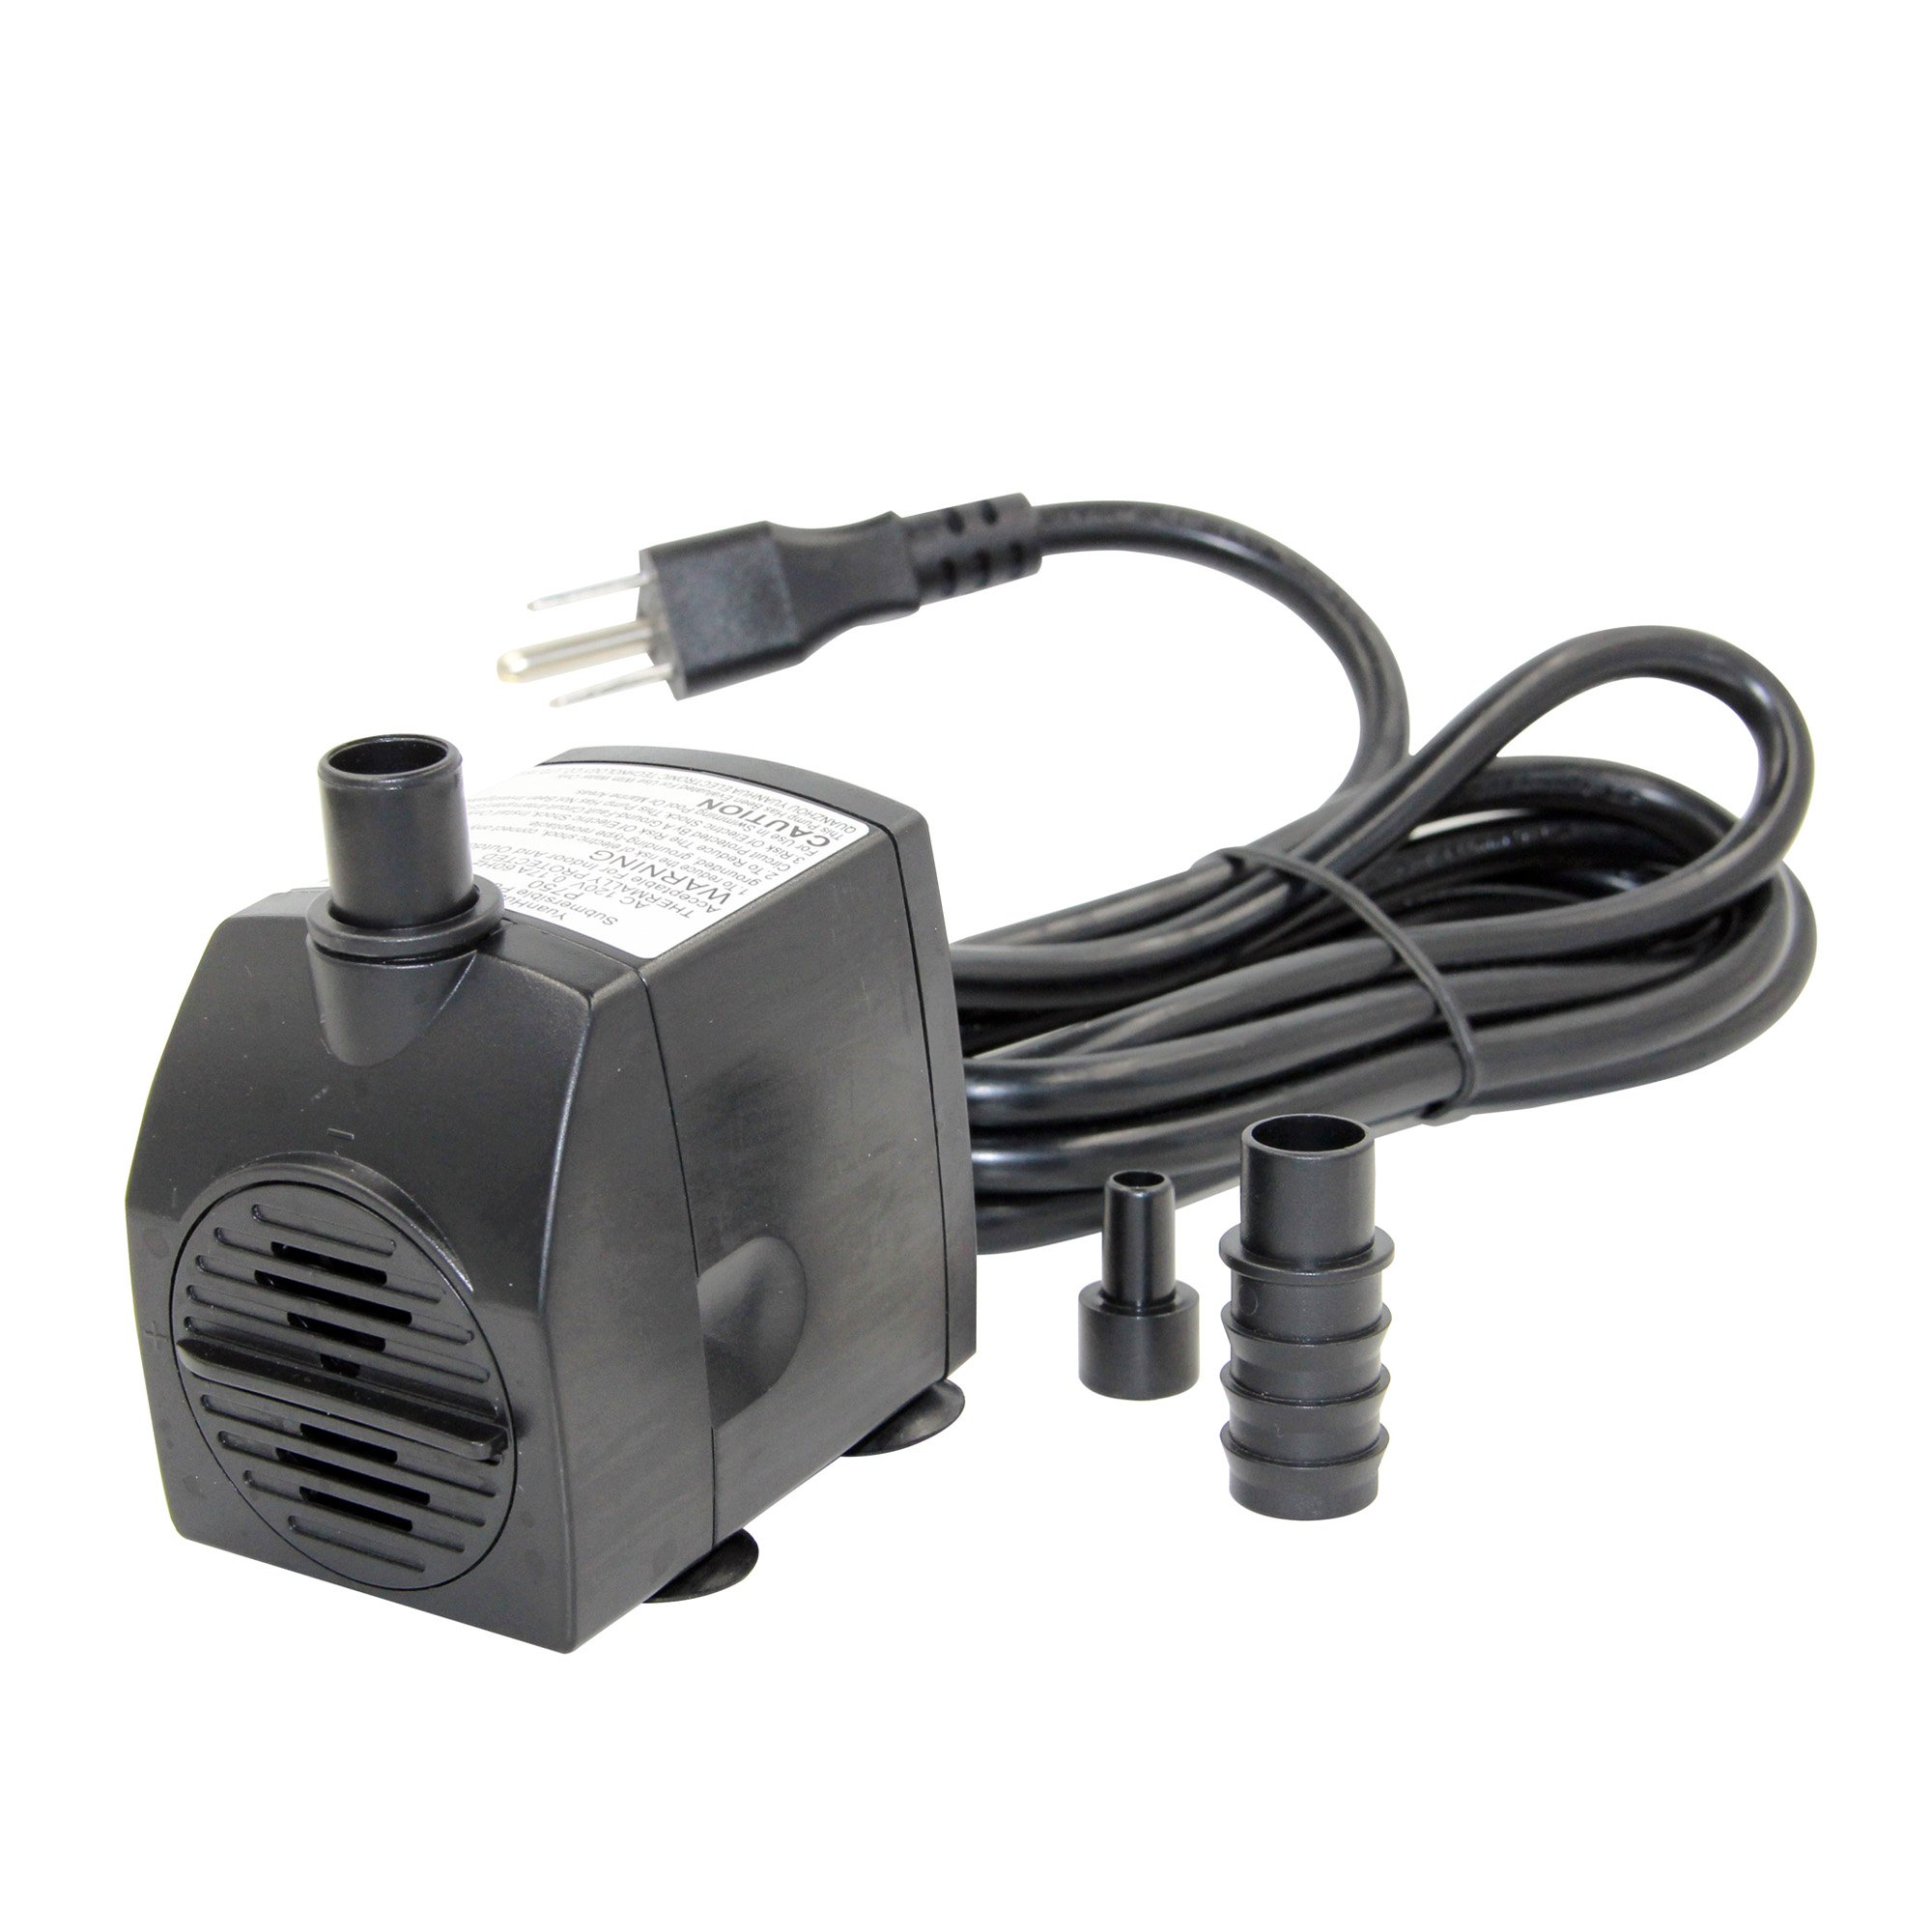 Peaktop P750: 190 GPH/Lift Submersible Pump with 6' Cords for Fountain Aquarium